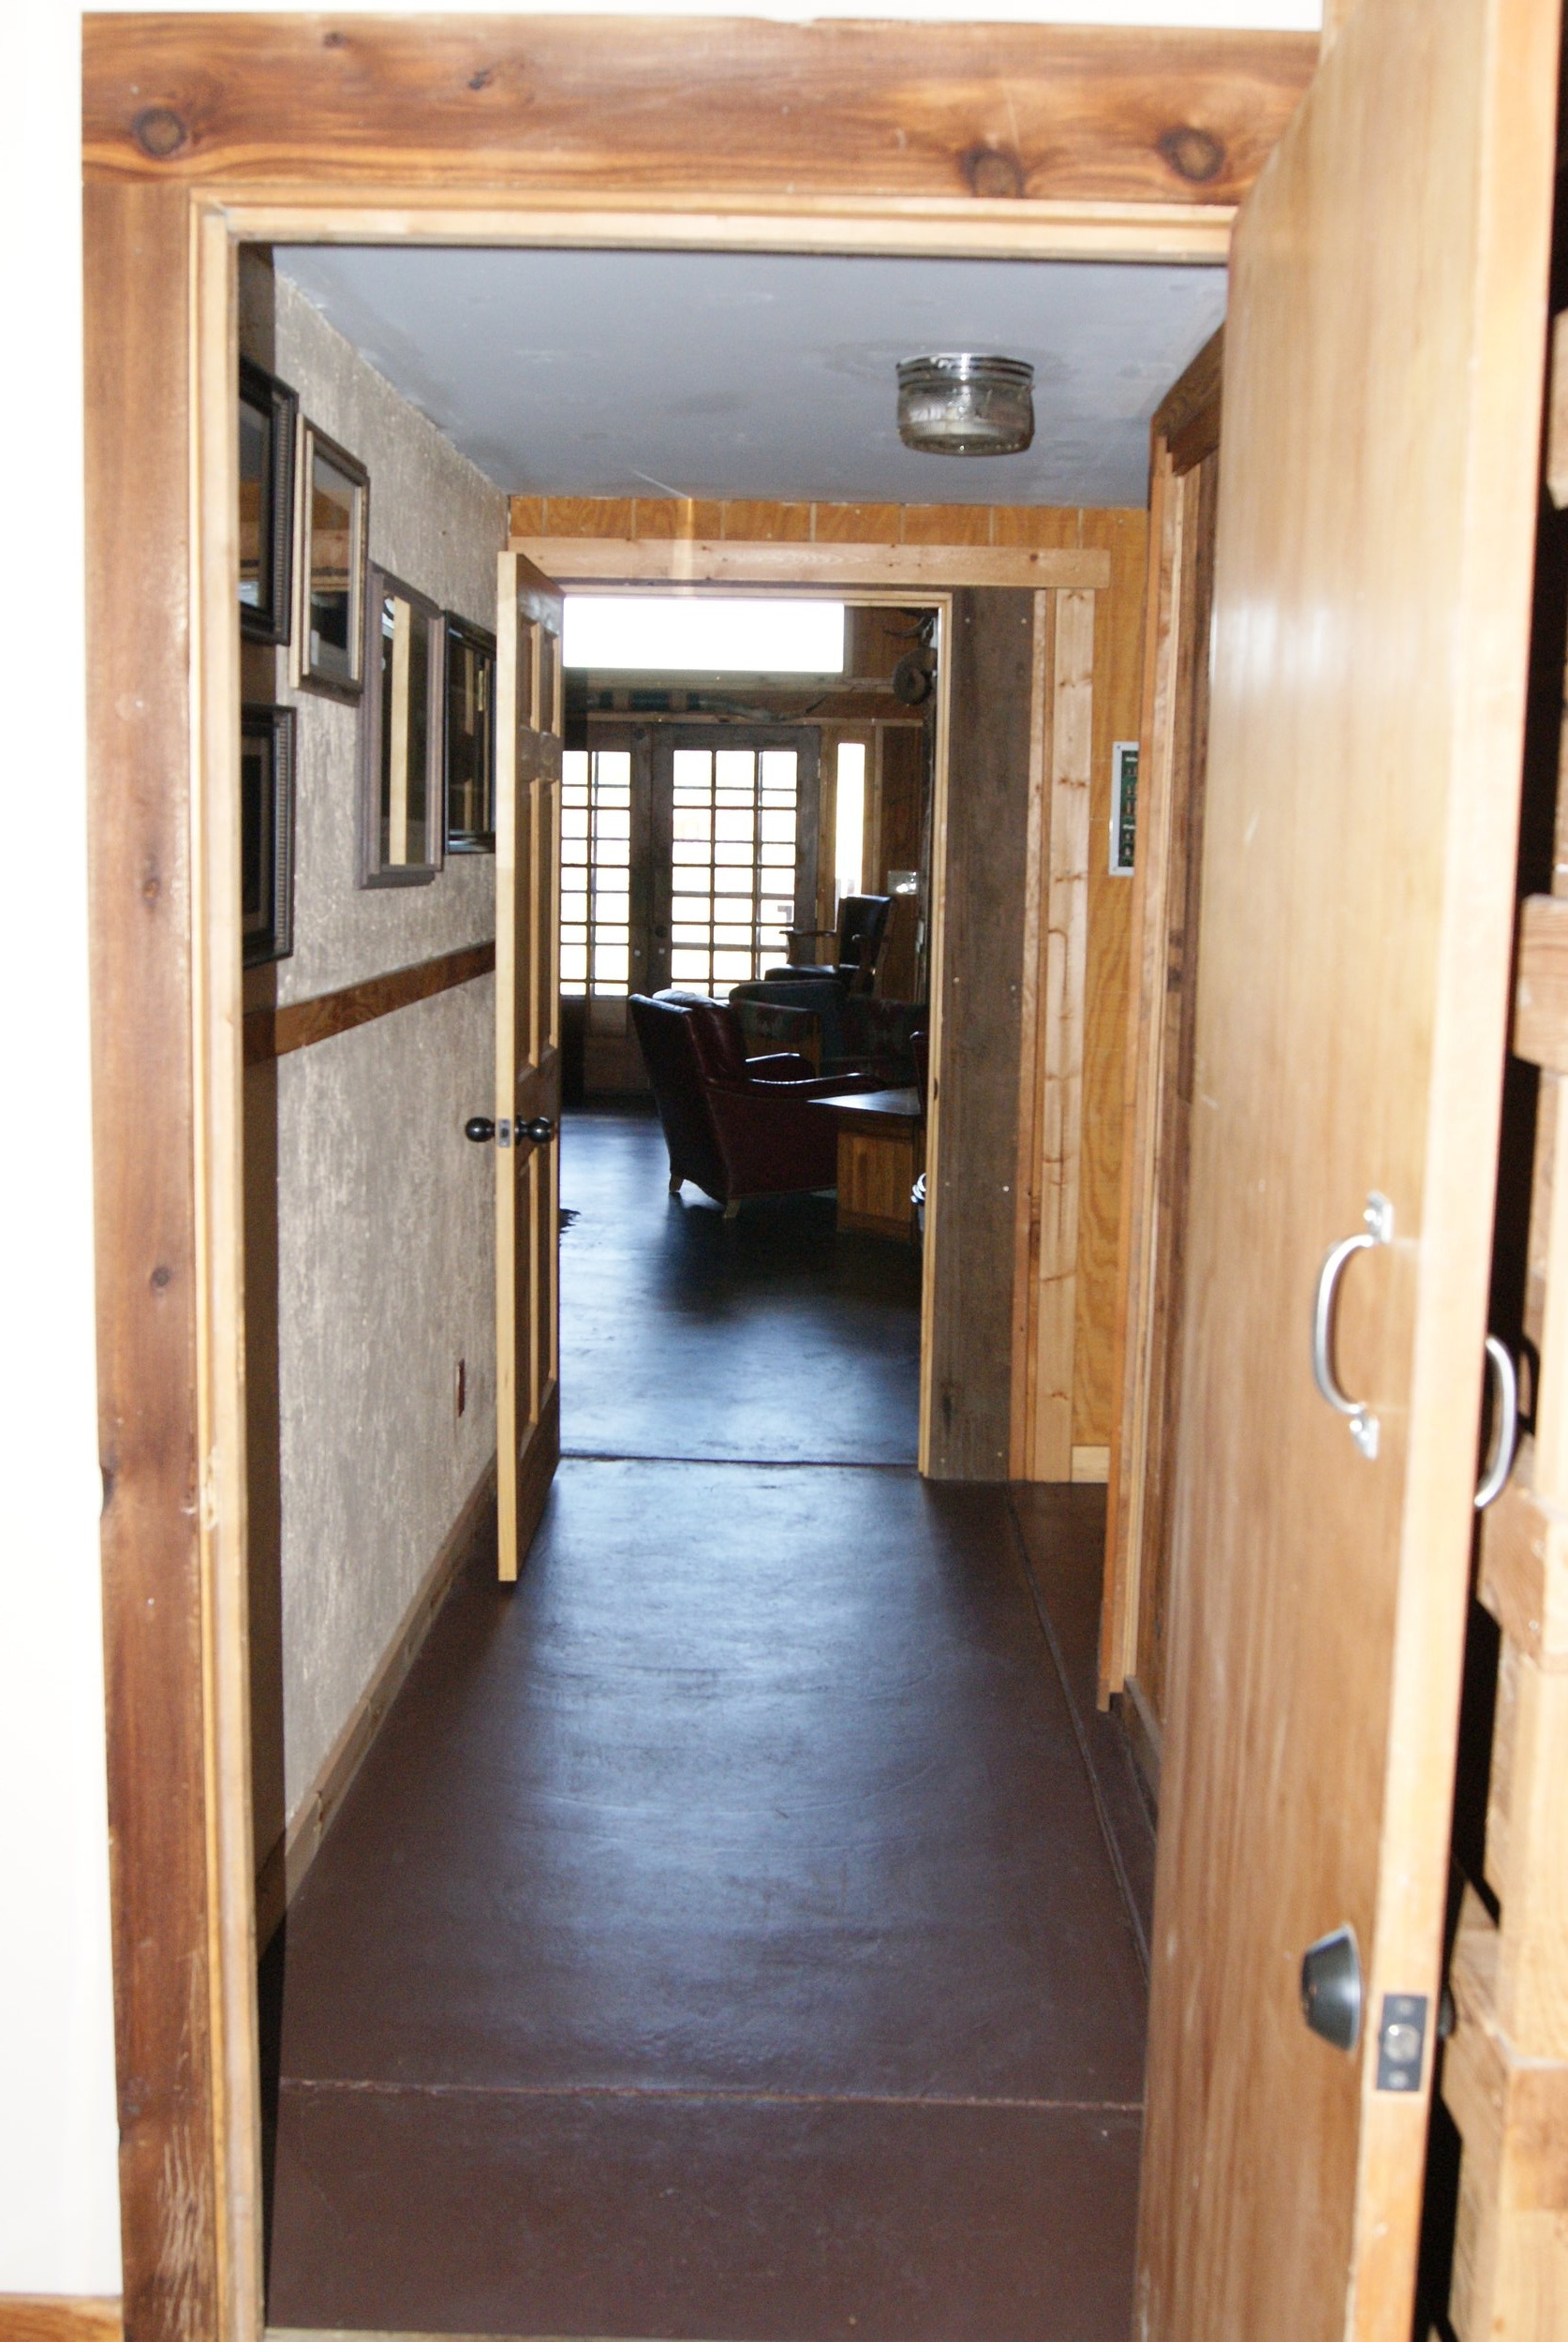 The Lodge hallway from West to East